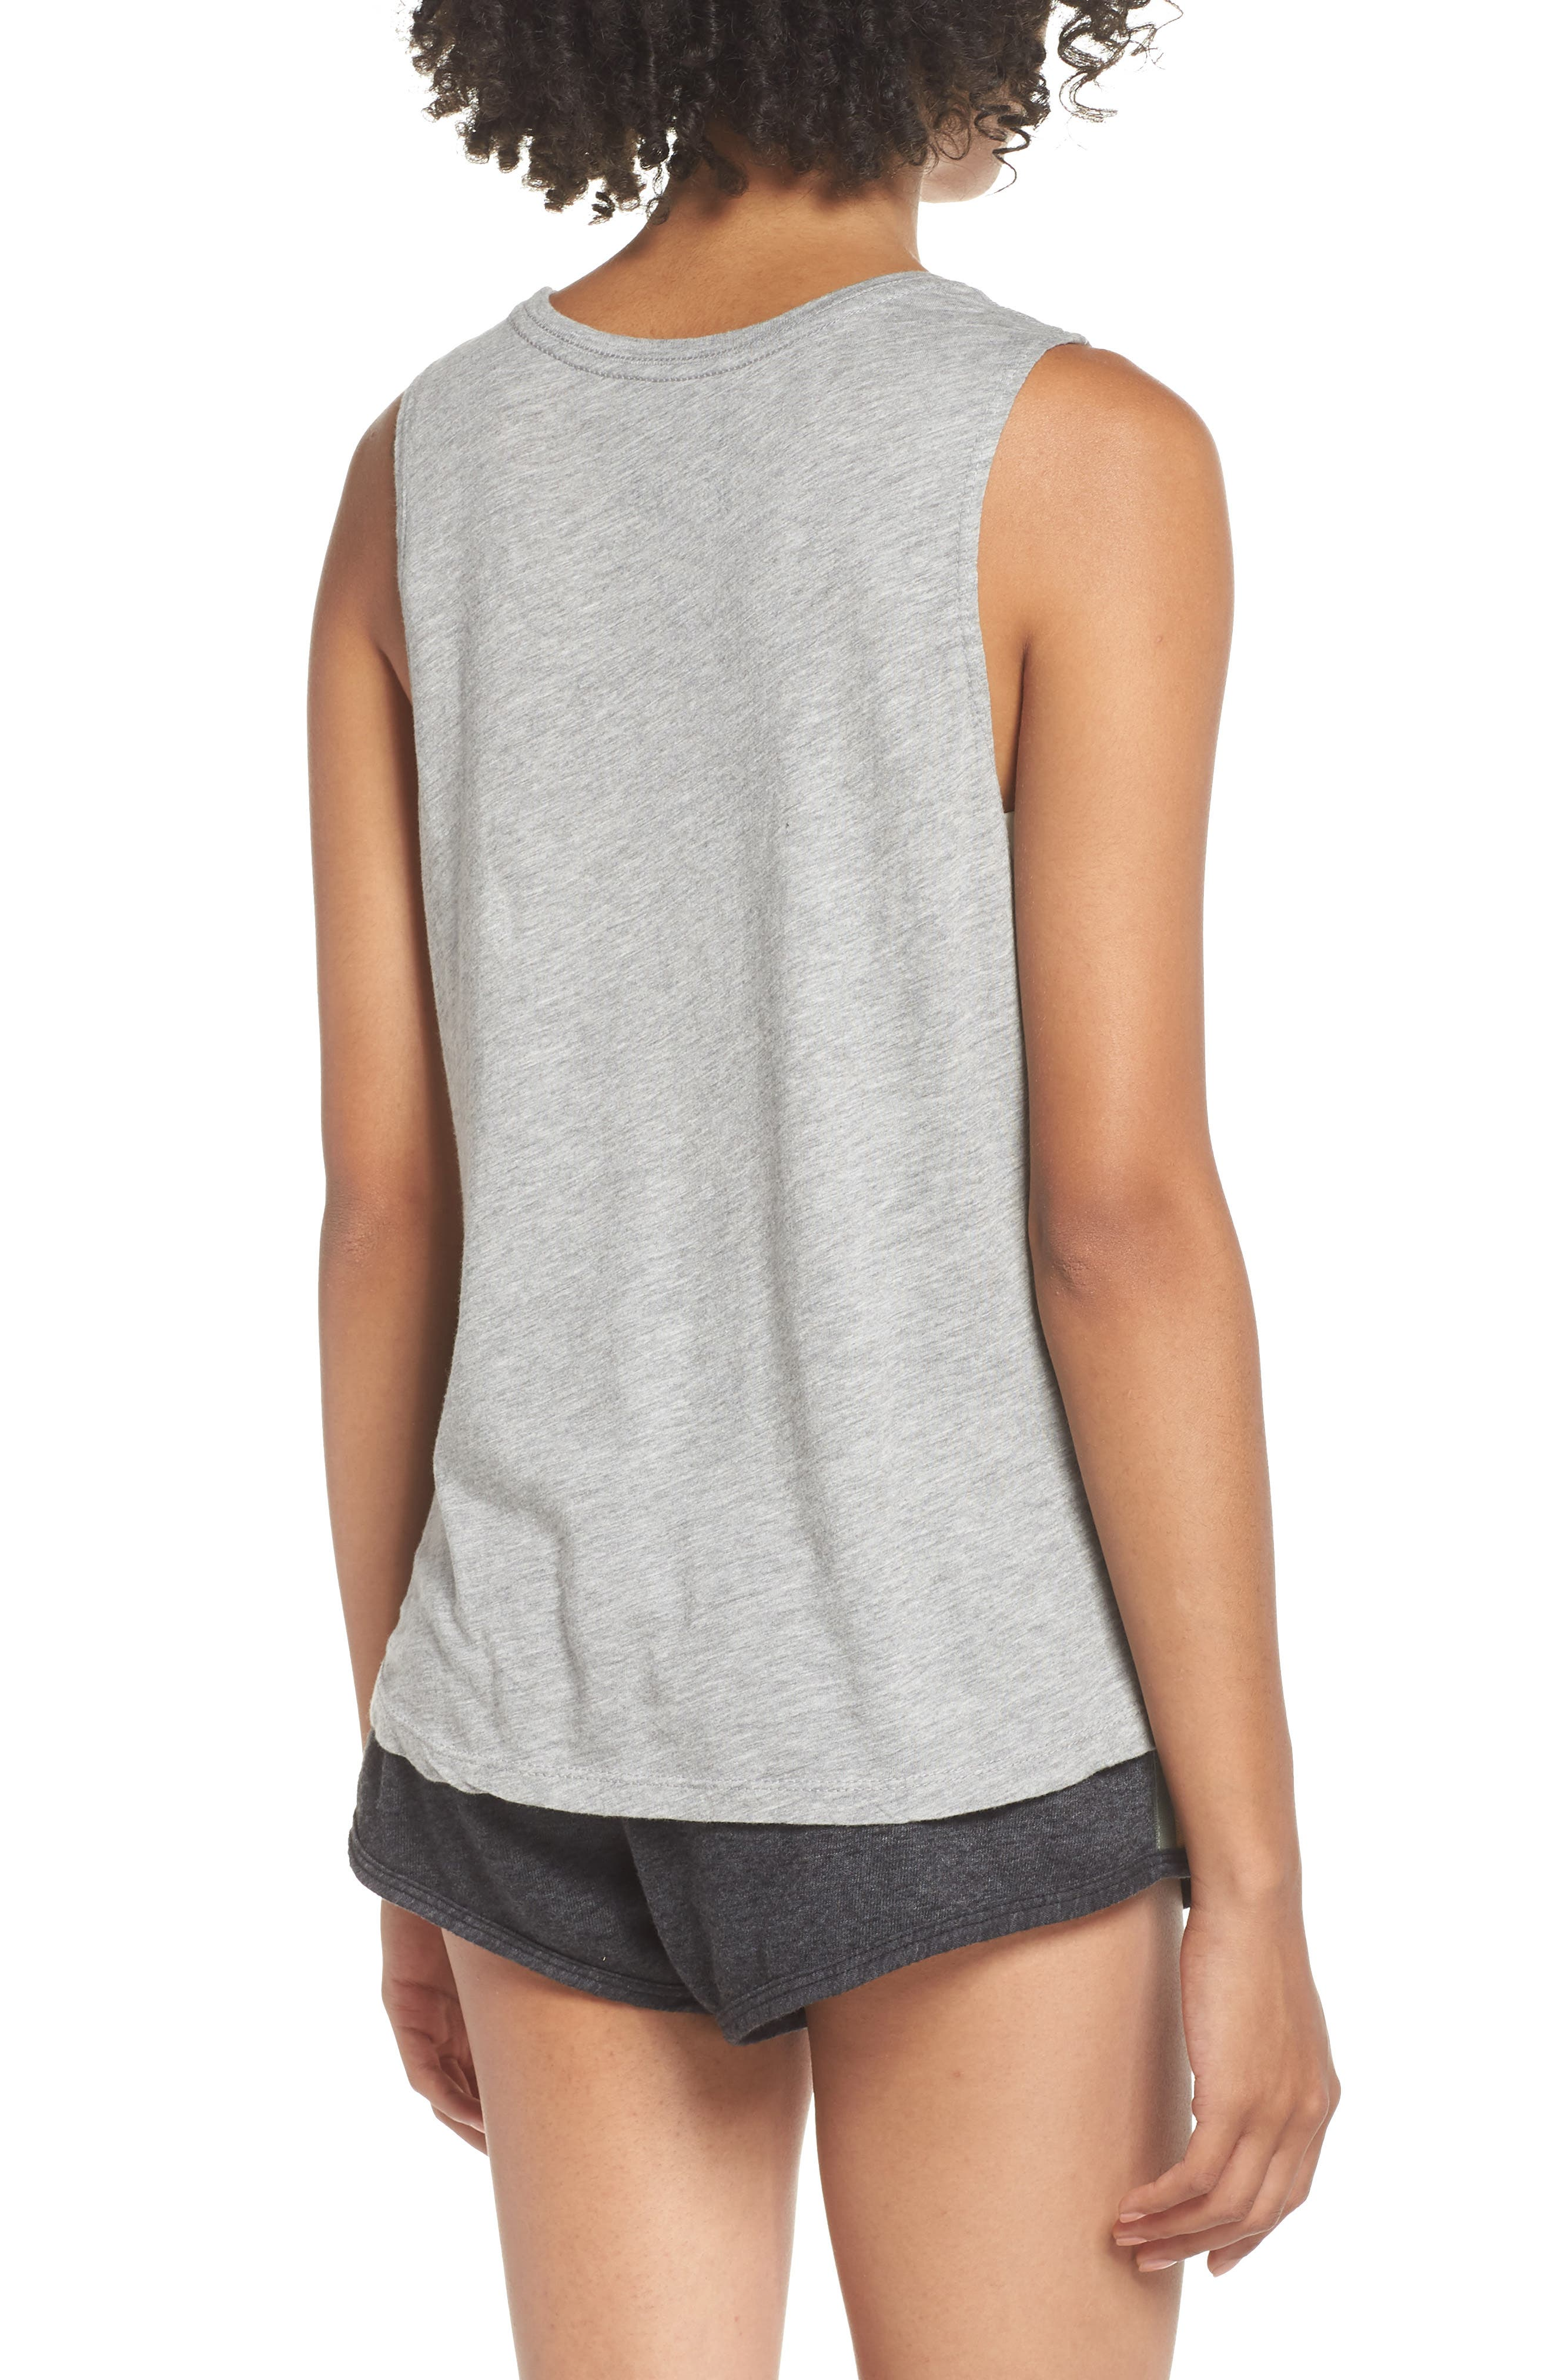 Proactive Muscle Tank Top,                             Alternate thumbnail 2, color,                             Hthr Grey